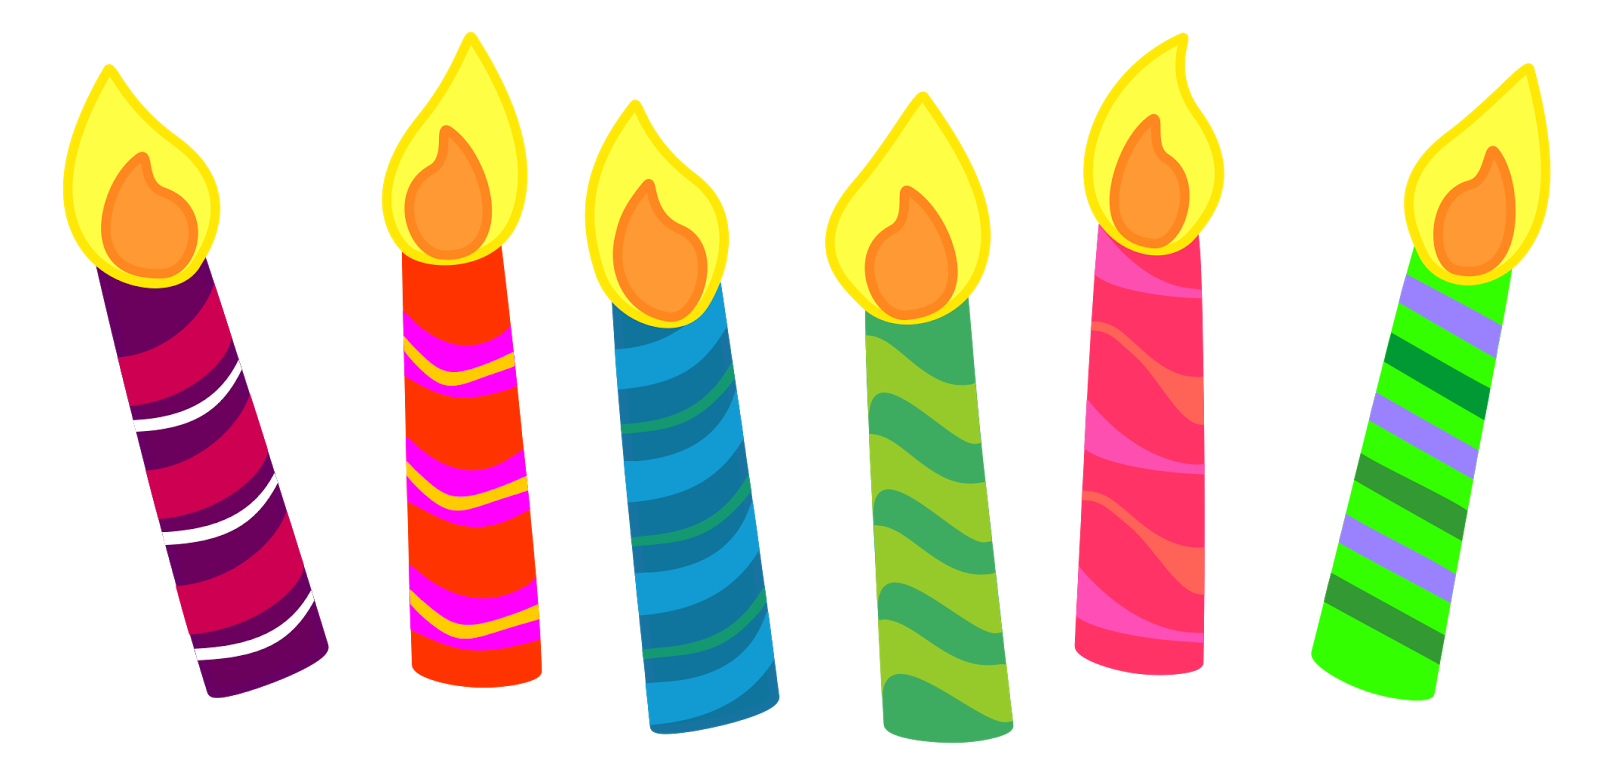 Candle clipart. For your projects or